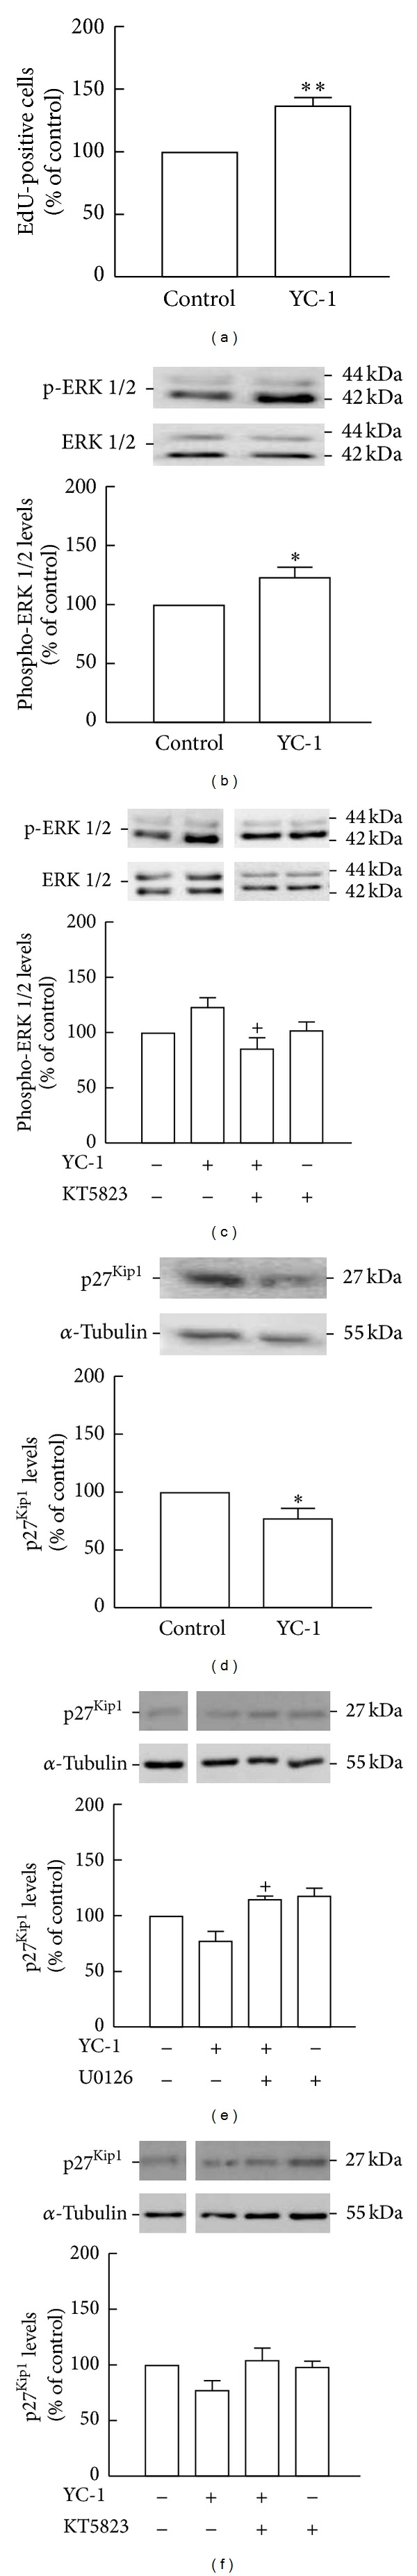 Activation of sGC stimulates proliferation of NSC, increases ERK1/2 phosphorylation, and decreases p27 Kip1 levels. Cell proliferation following treatment with 20 μ M YC-1 (a) for 24 h was assessed by the incorporation of EdU and analyzed by flow cytometry. Levels of phospho-ERK1/2 following treatment with 20 μ M YC-1 (b) or YC-1 plus 1 μ M KT5823 (c) and p27 Kip1 levels following treatment with YC-1 (d) or YC-1 plus 1 μ M U0126 (e) or KT5823 (f) for 2 h were assessed by Western blot. Representative images are shown. Data are expressed as means ± SEM of at least 4 independent experiments. (a), (b), and (d) two-tailed t -test, * P